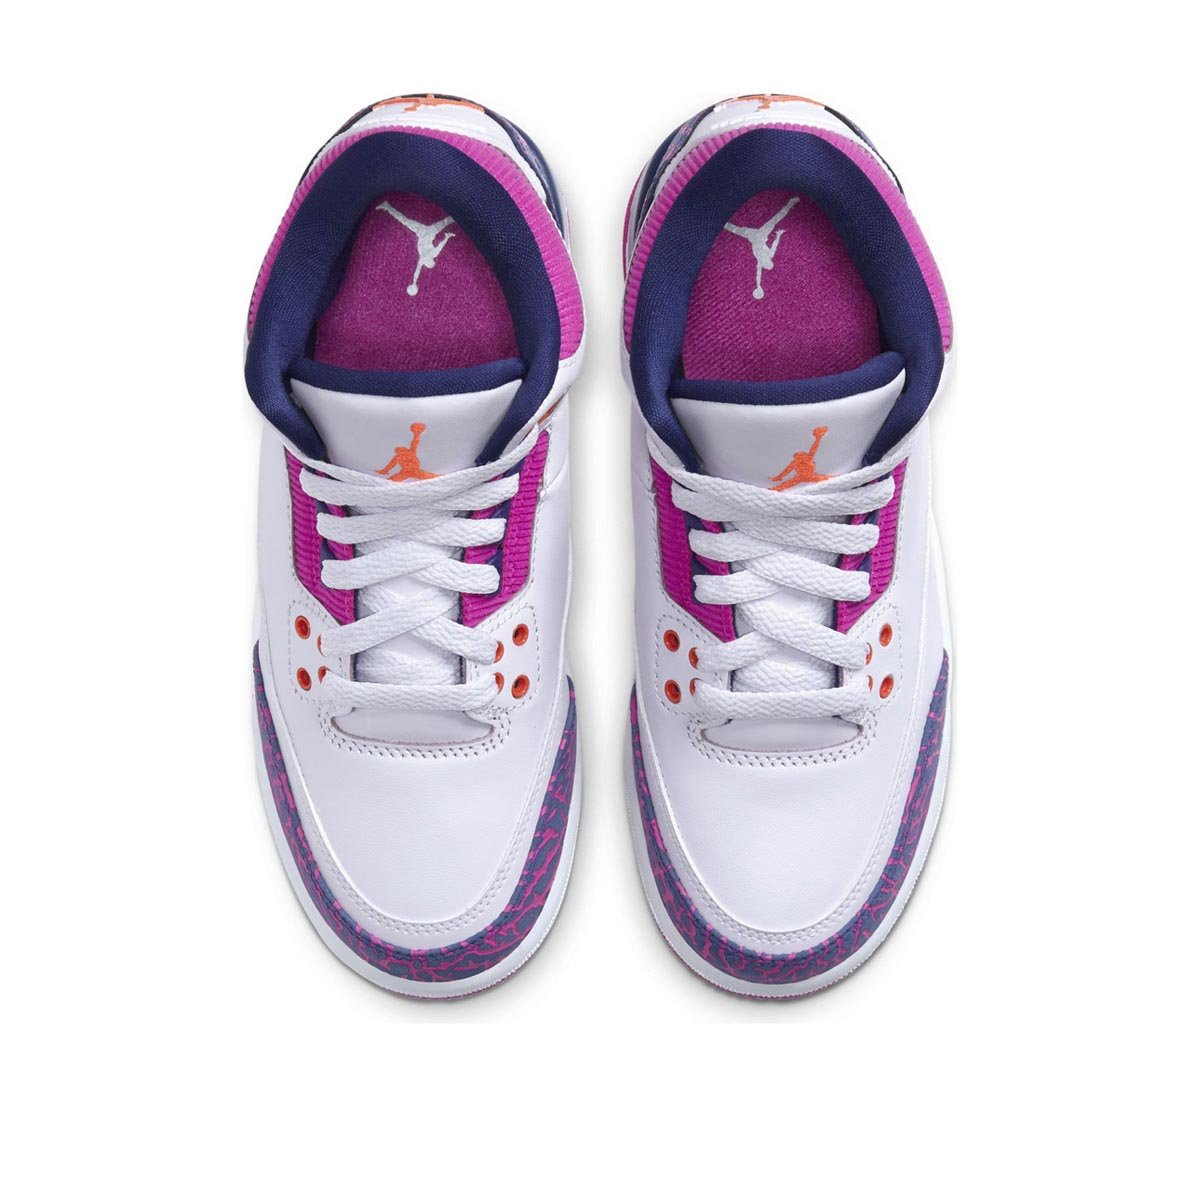 Big Kids Girls' Air Jordan 3 Retro (GS) Shoe